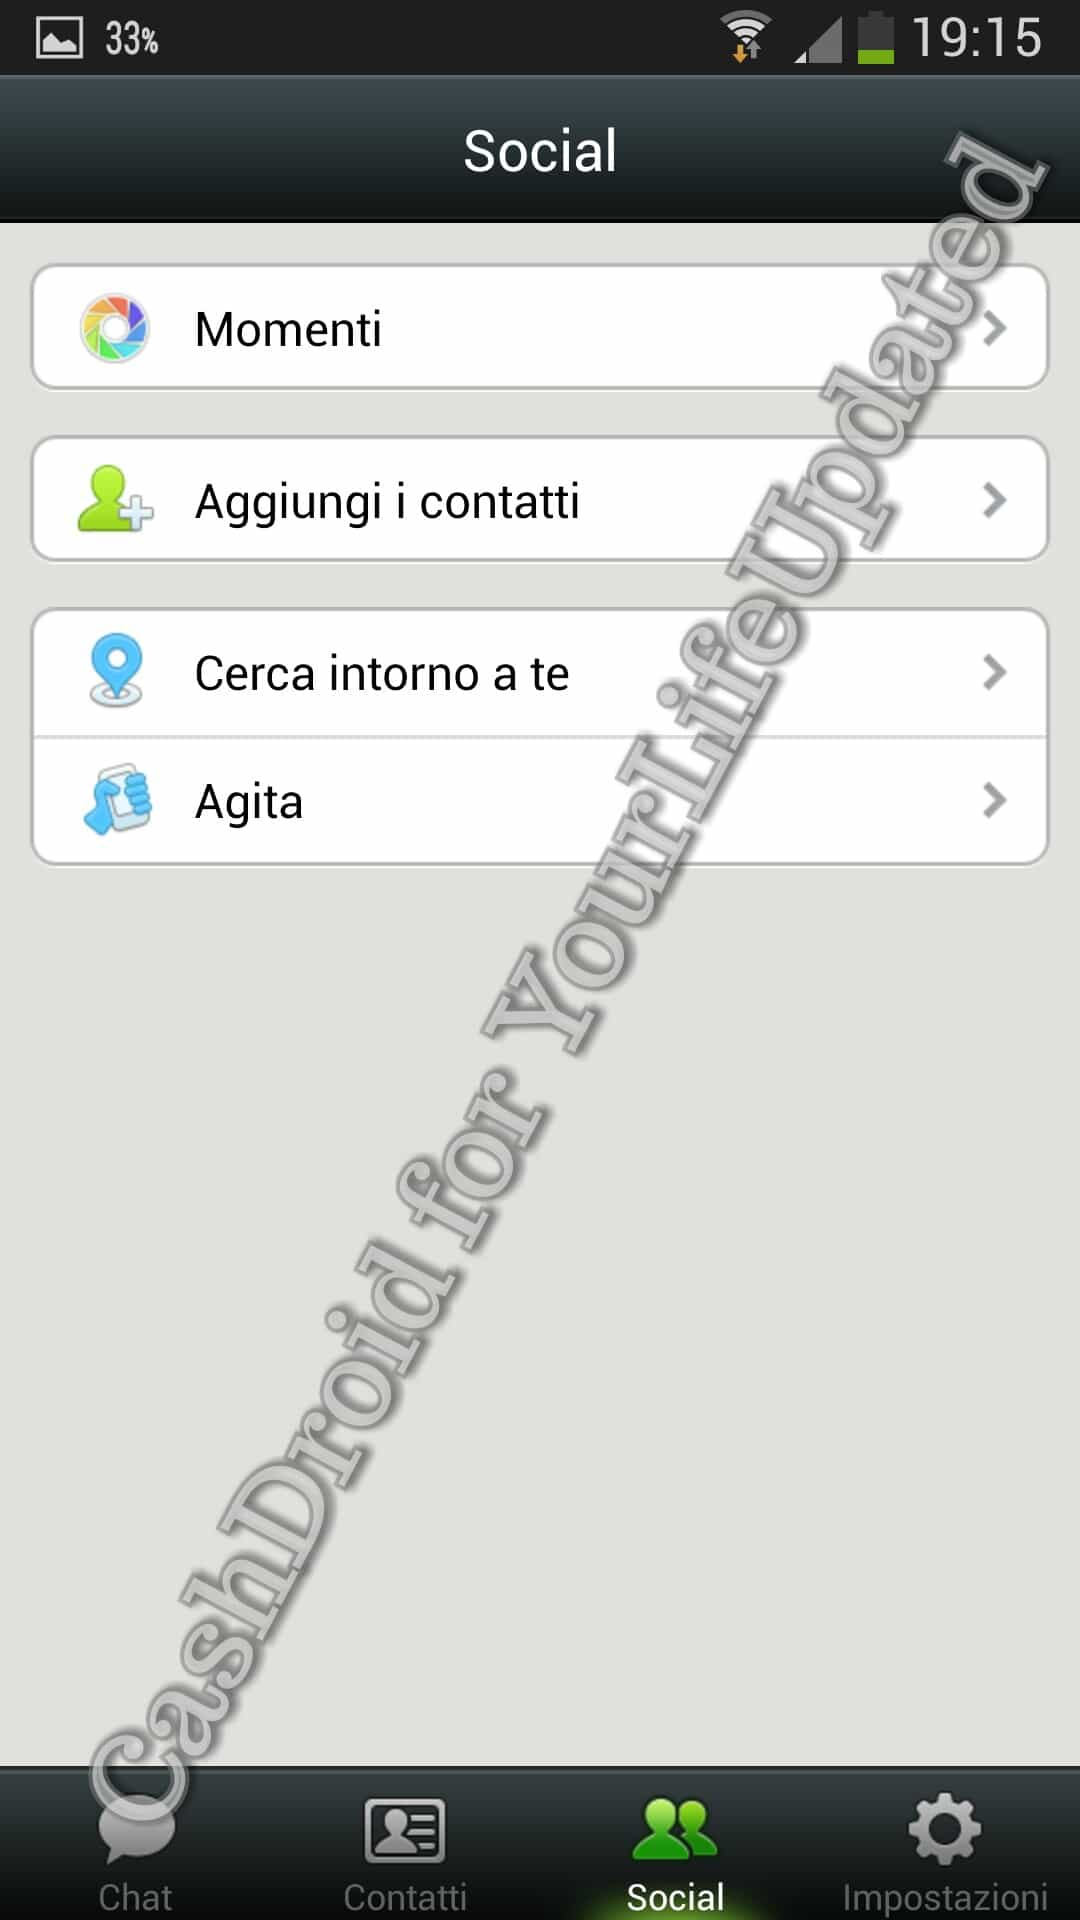 Screenshot_2013-07-08-19-15-30_wm